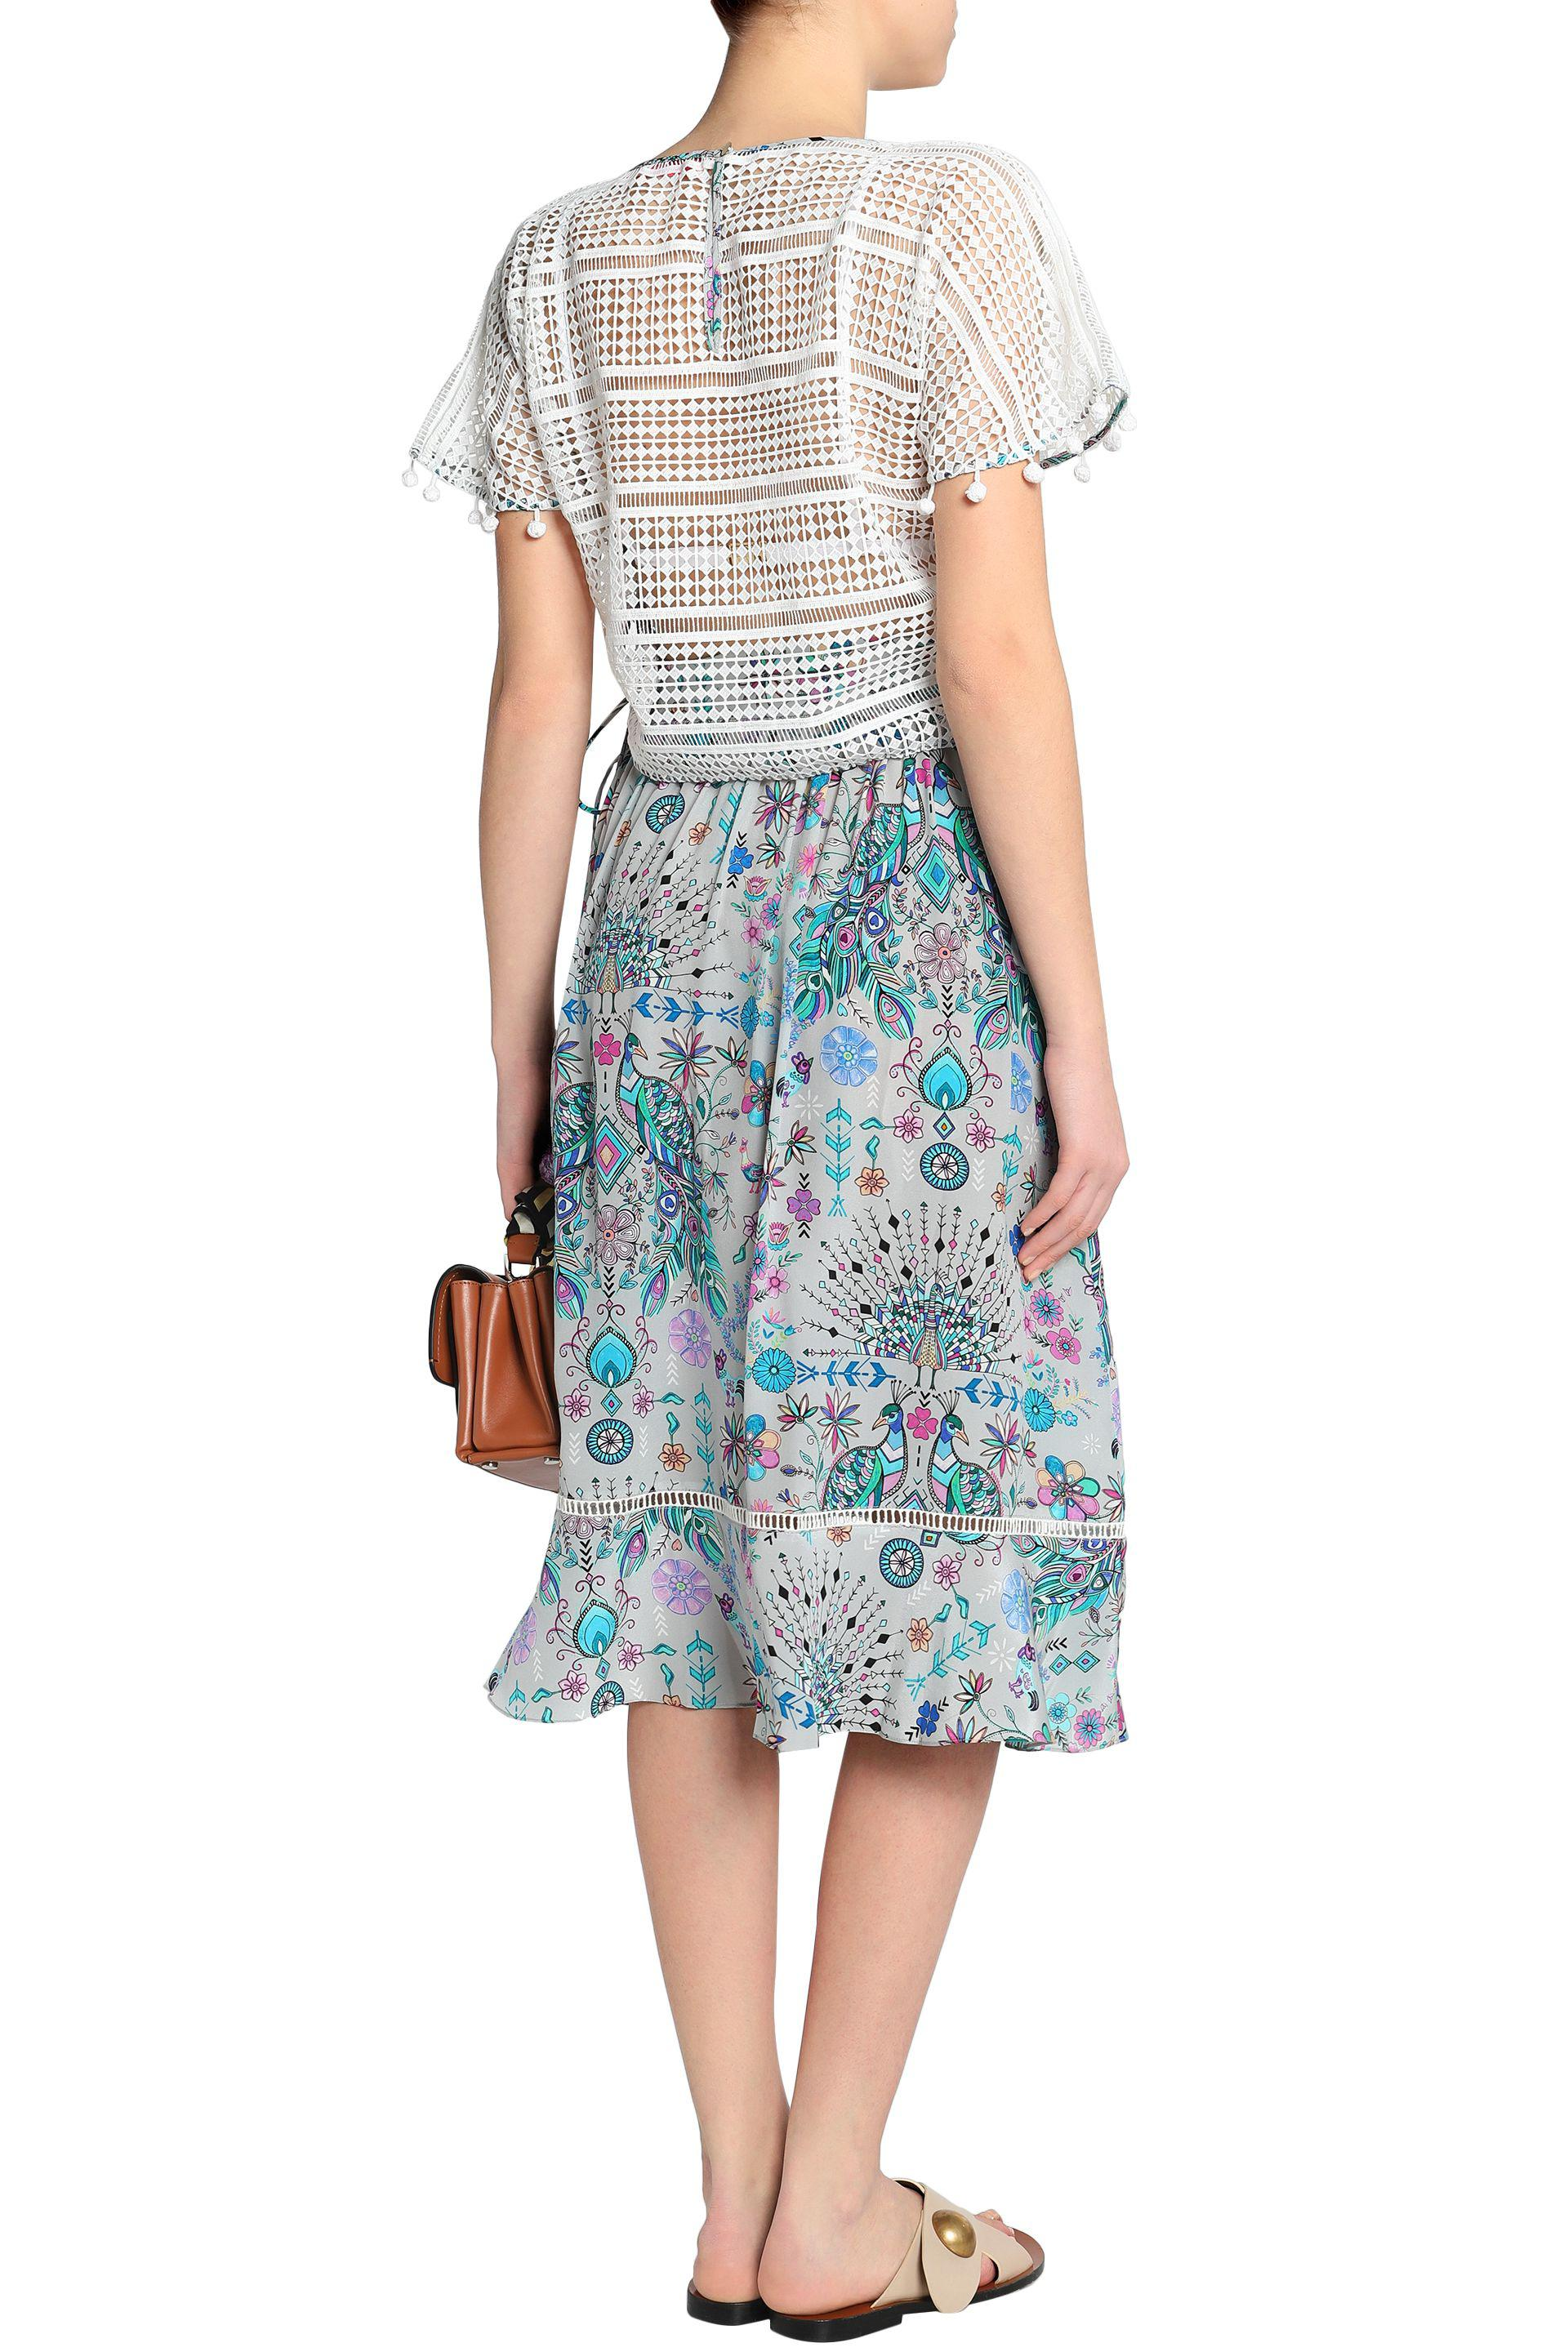 Matthew Williamson Woman Lace-up Pompom-trimmed Guipure Lace Top Off-white Size 10 Matthew Williamson Sale Visit New Outlet Explore Manchester Great Sale Extremely Clearance With Credit Card TbVaRjYMk